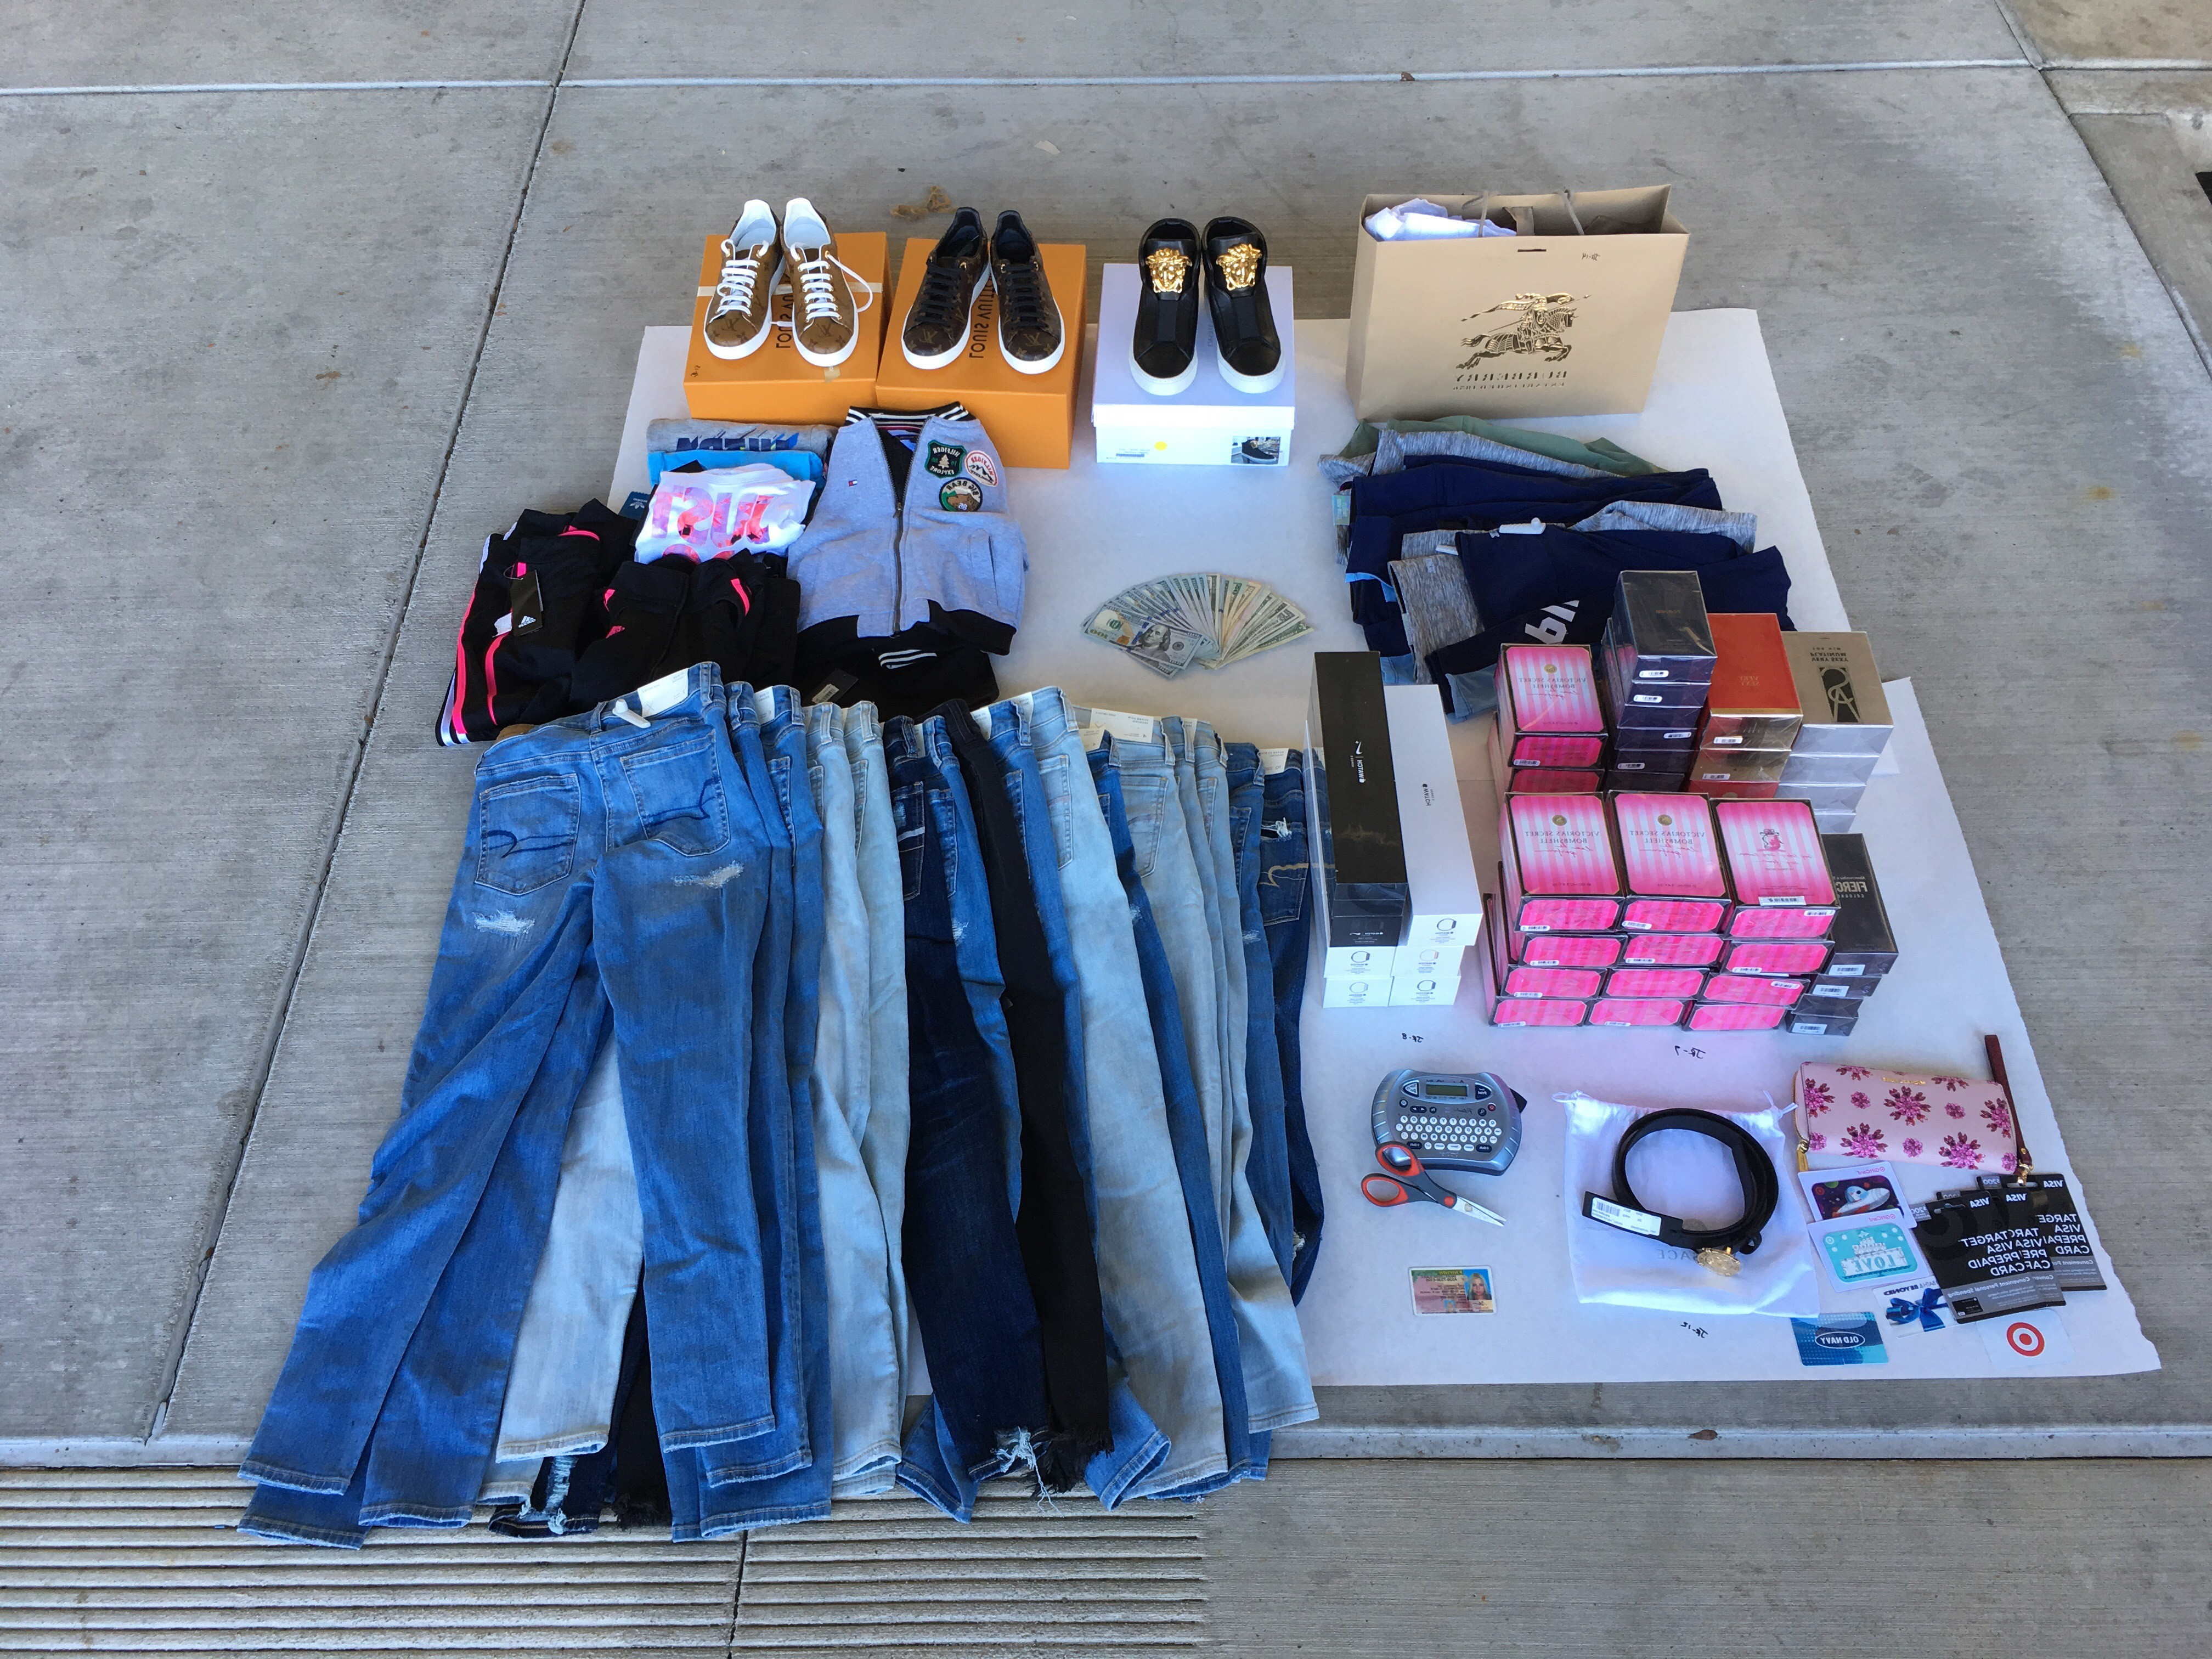 Redding police displays a number of items recovered during an investigation into stolen identity and credit card theft. Camila Fernandez, 25, and Paola Jerez-Huerta, 29, were both arrested on multiple charges. (Photo provided by Redding Police Department)